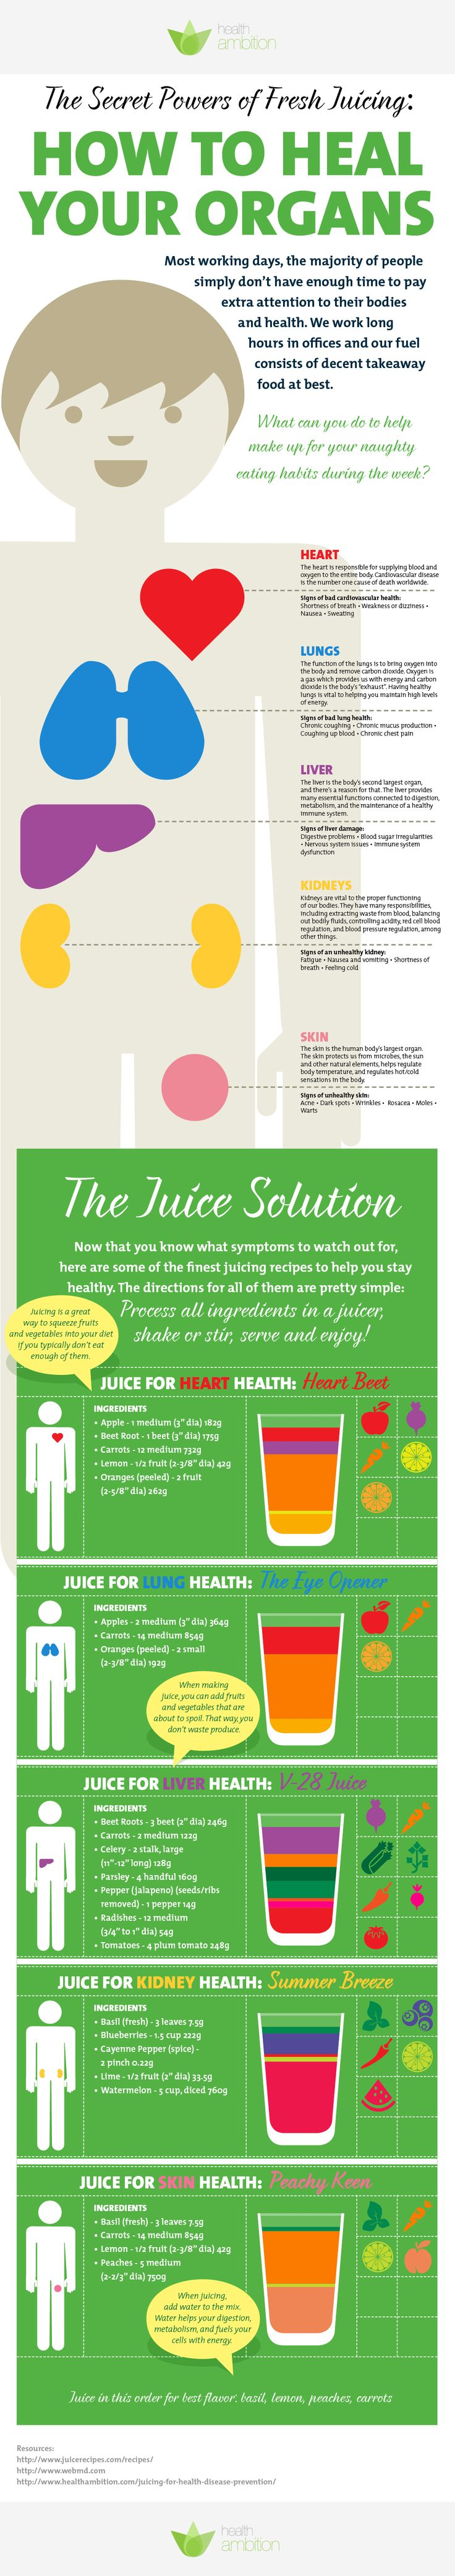 The Secret Powers of Fresh Juicing: How to Heal Your Organs